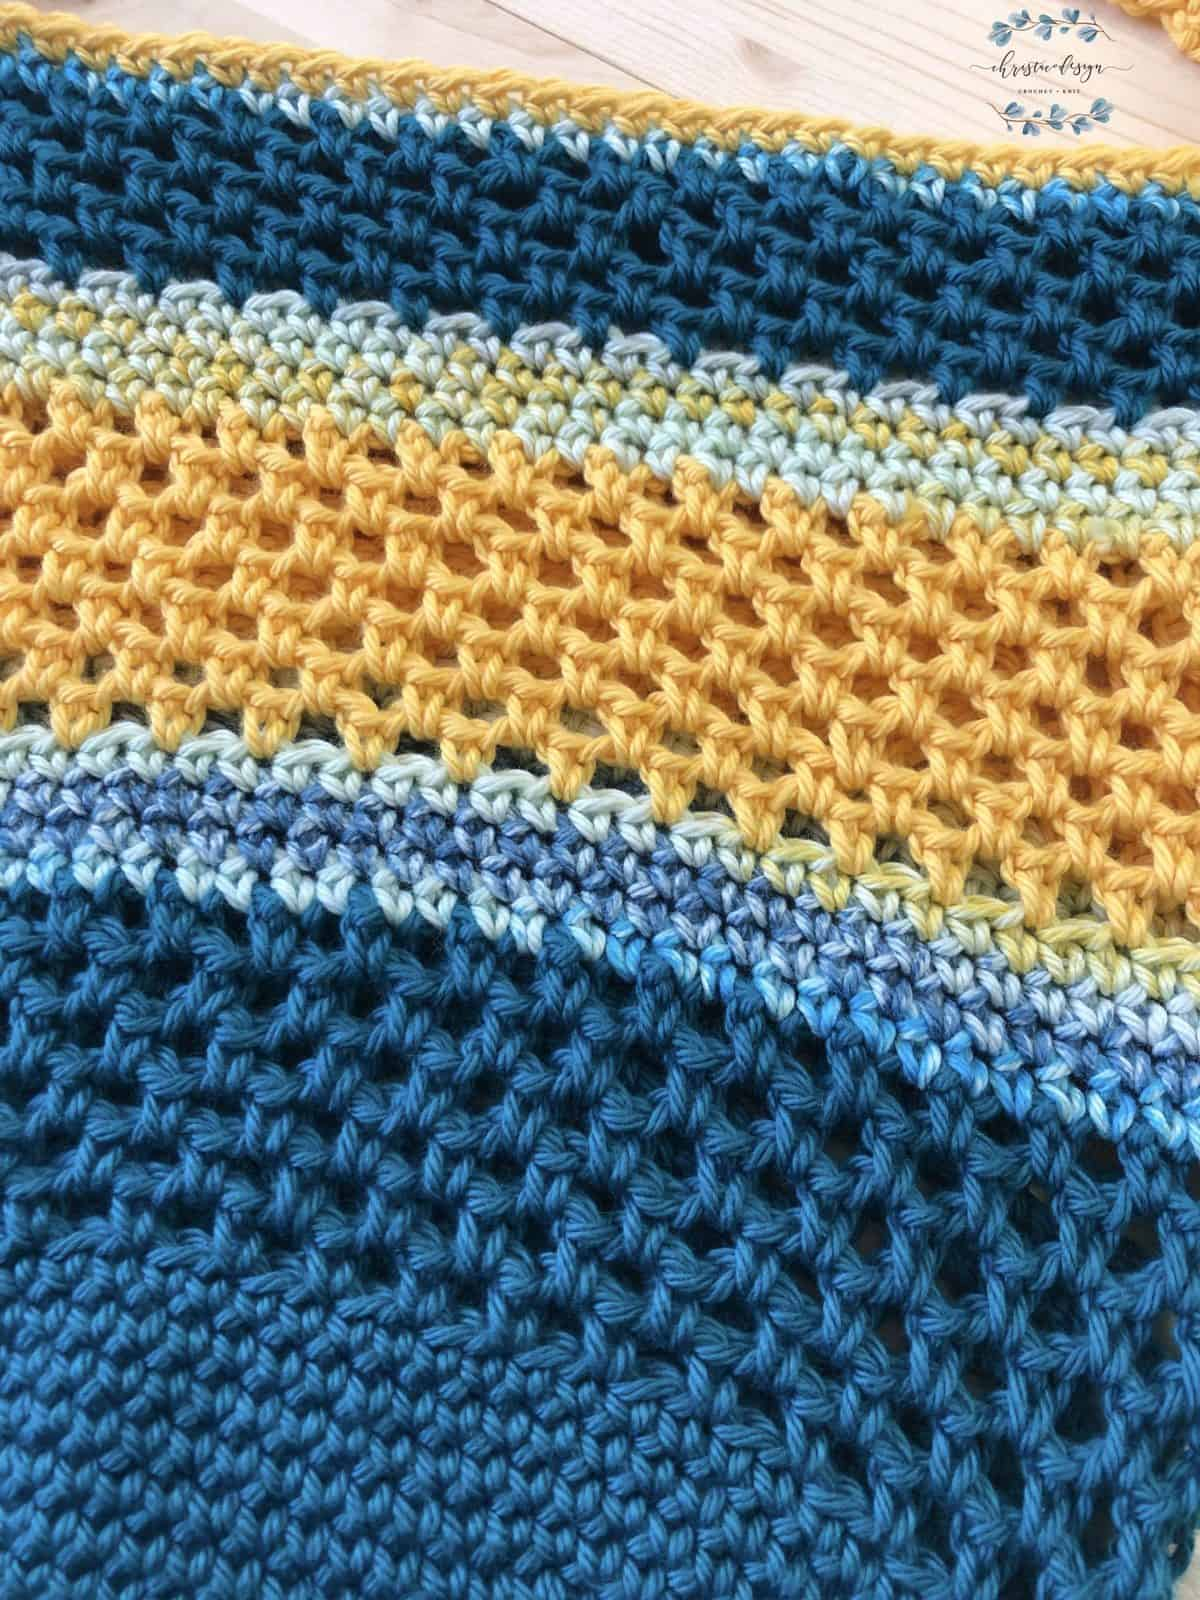 picture up close of coastal sun crochet beach tote bag yellow and teal mesh sides